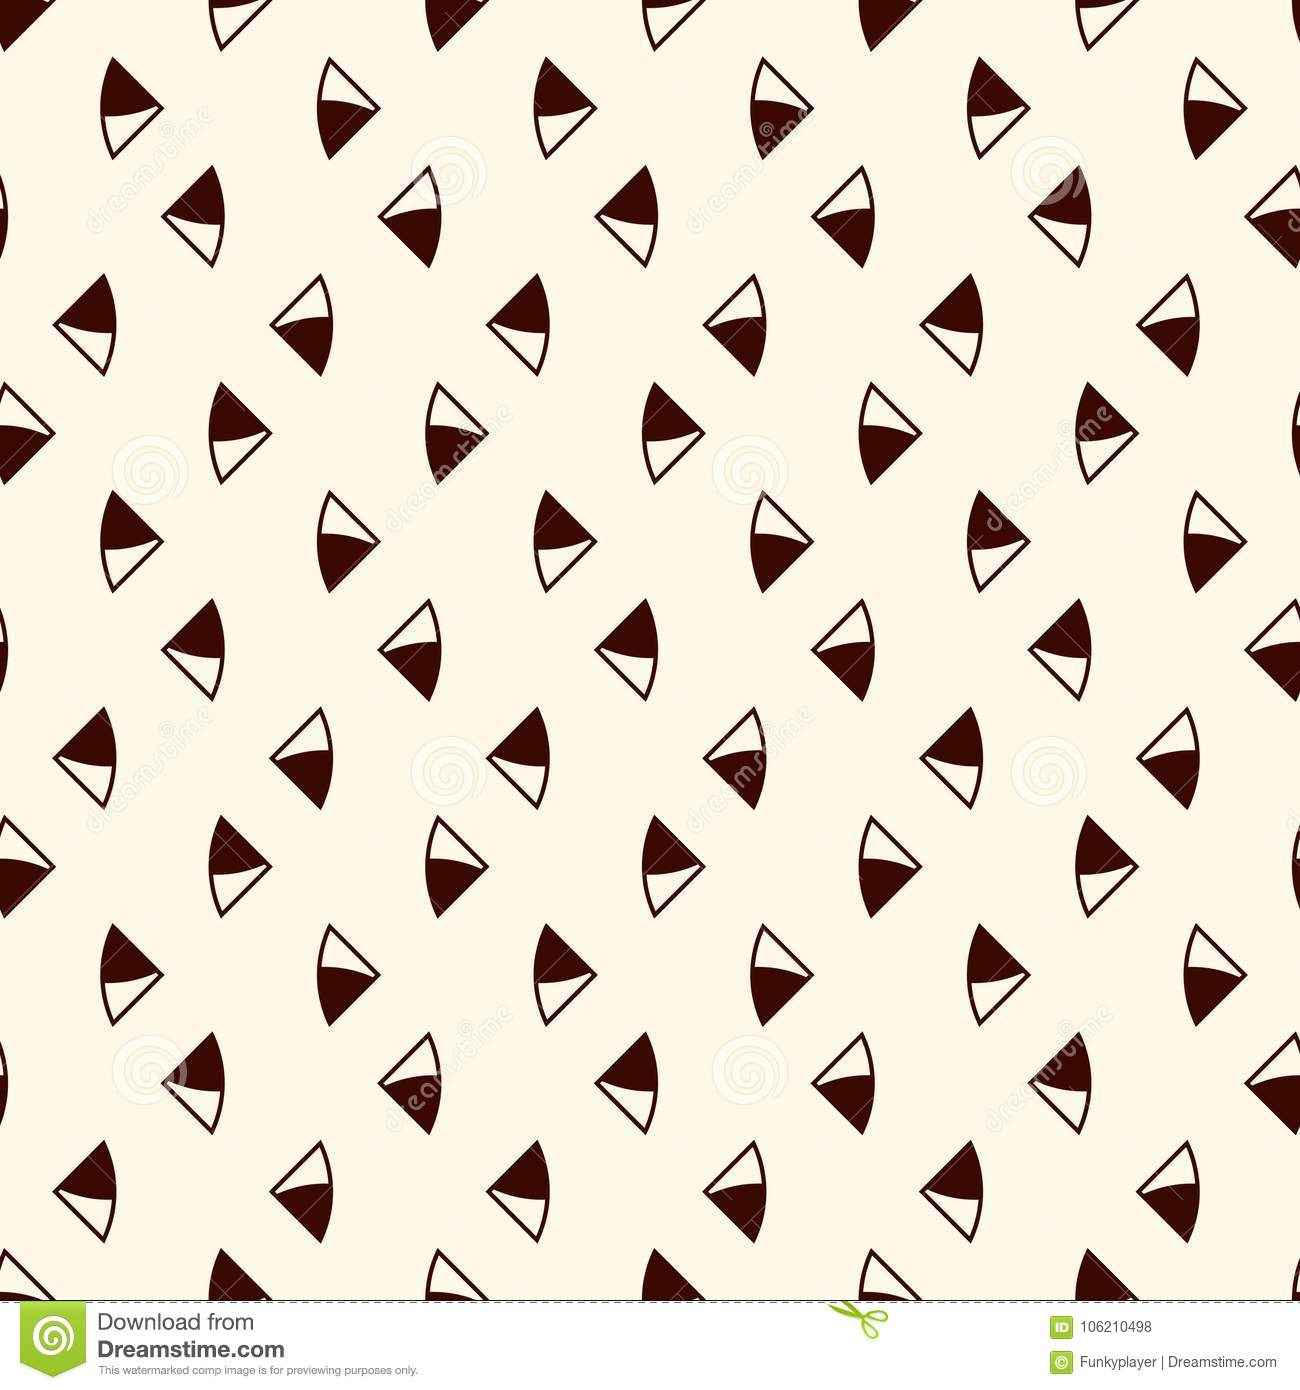 Minimalist abstract background. Simple modern print with mini triangles. Seamless pattern with geometric figures